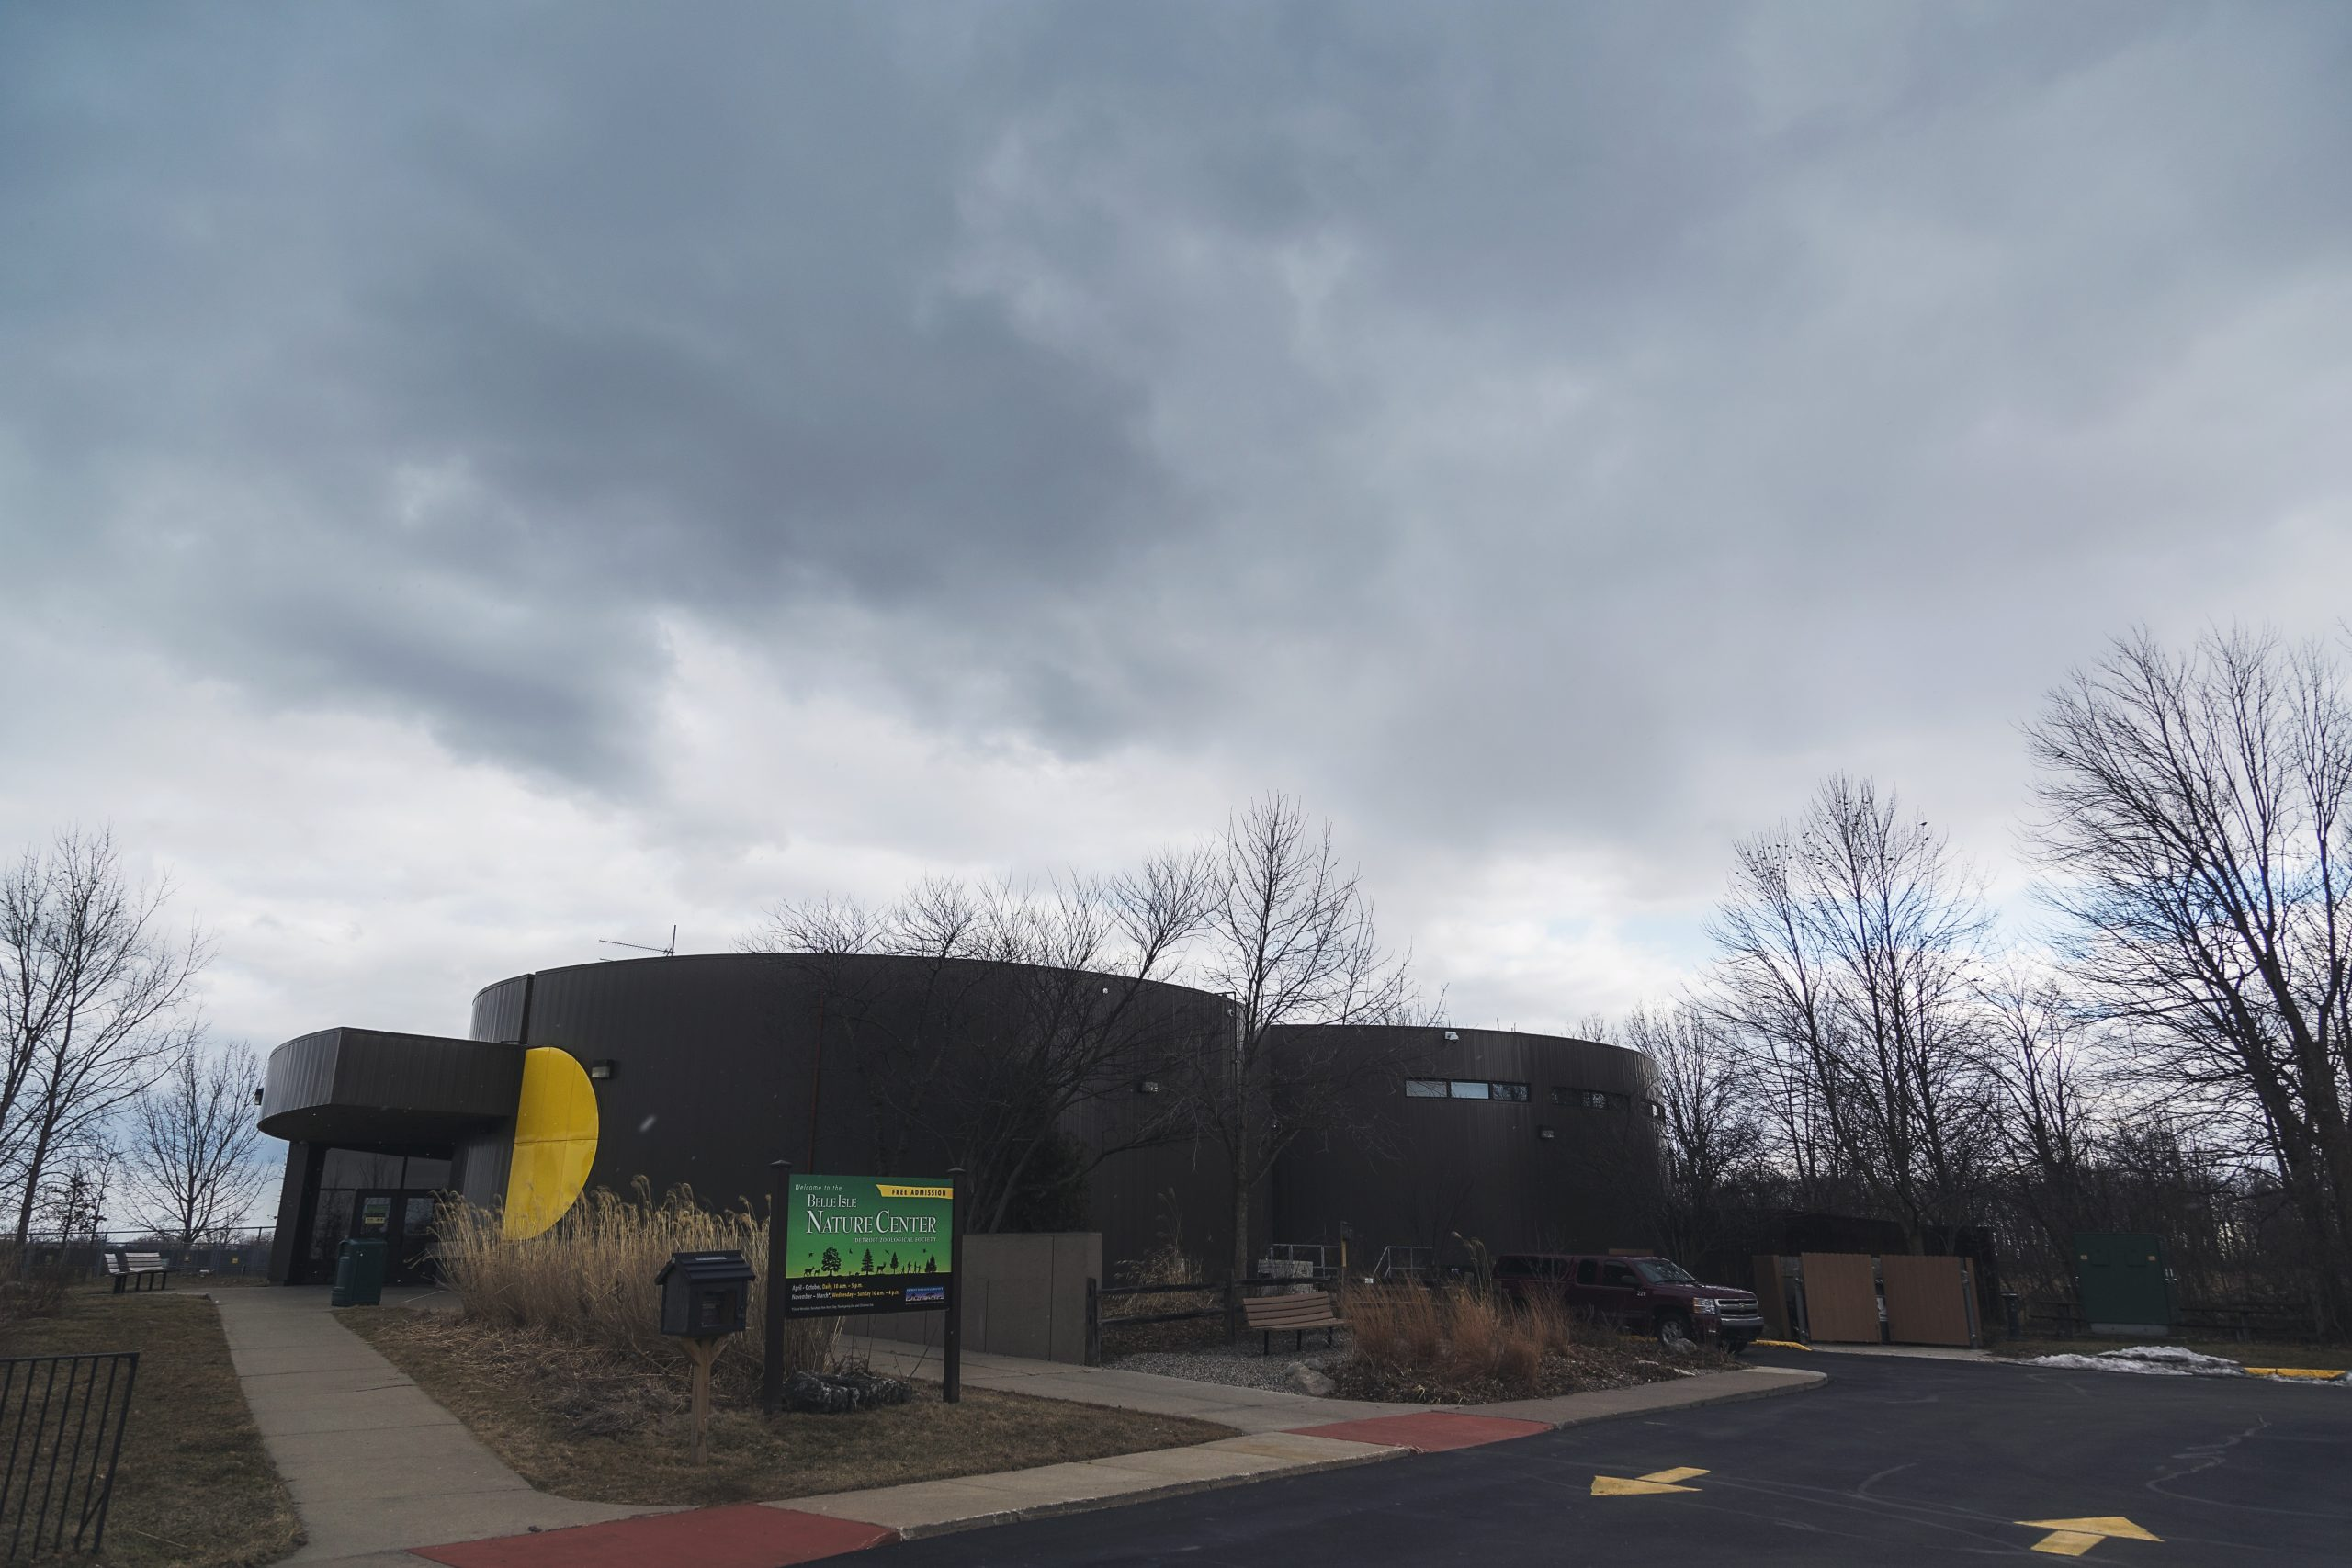 The Belle Isle Nature Center